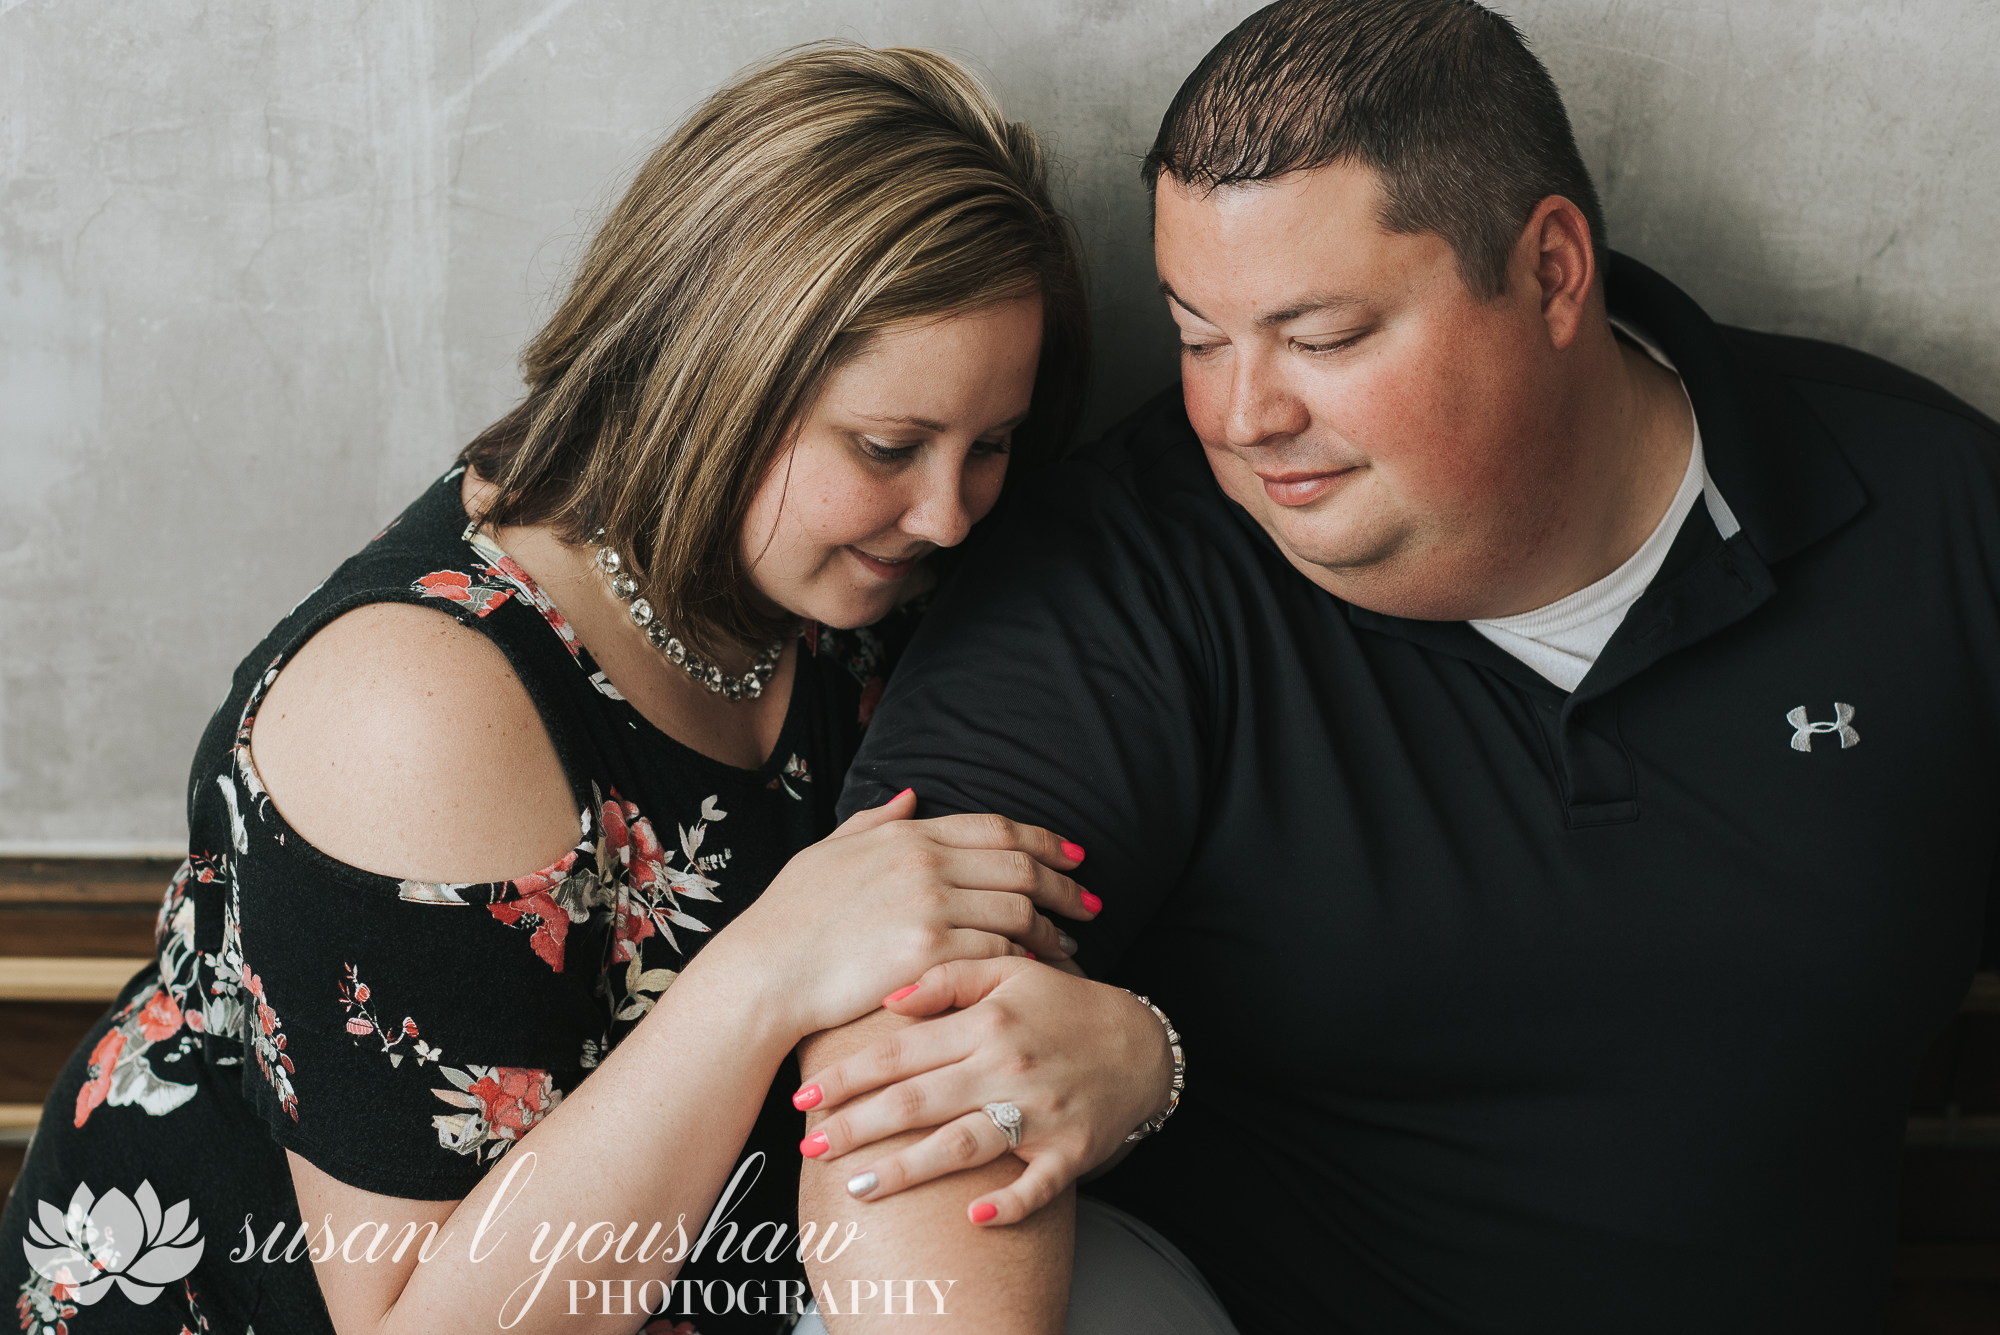 BLOG Love Mini Sessions 06-28-2018 SLY Photography LLC-9.jpg